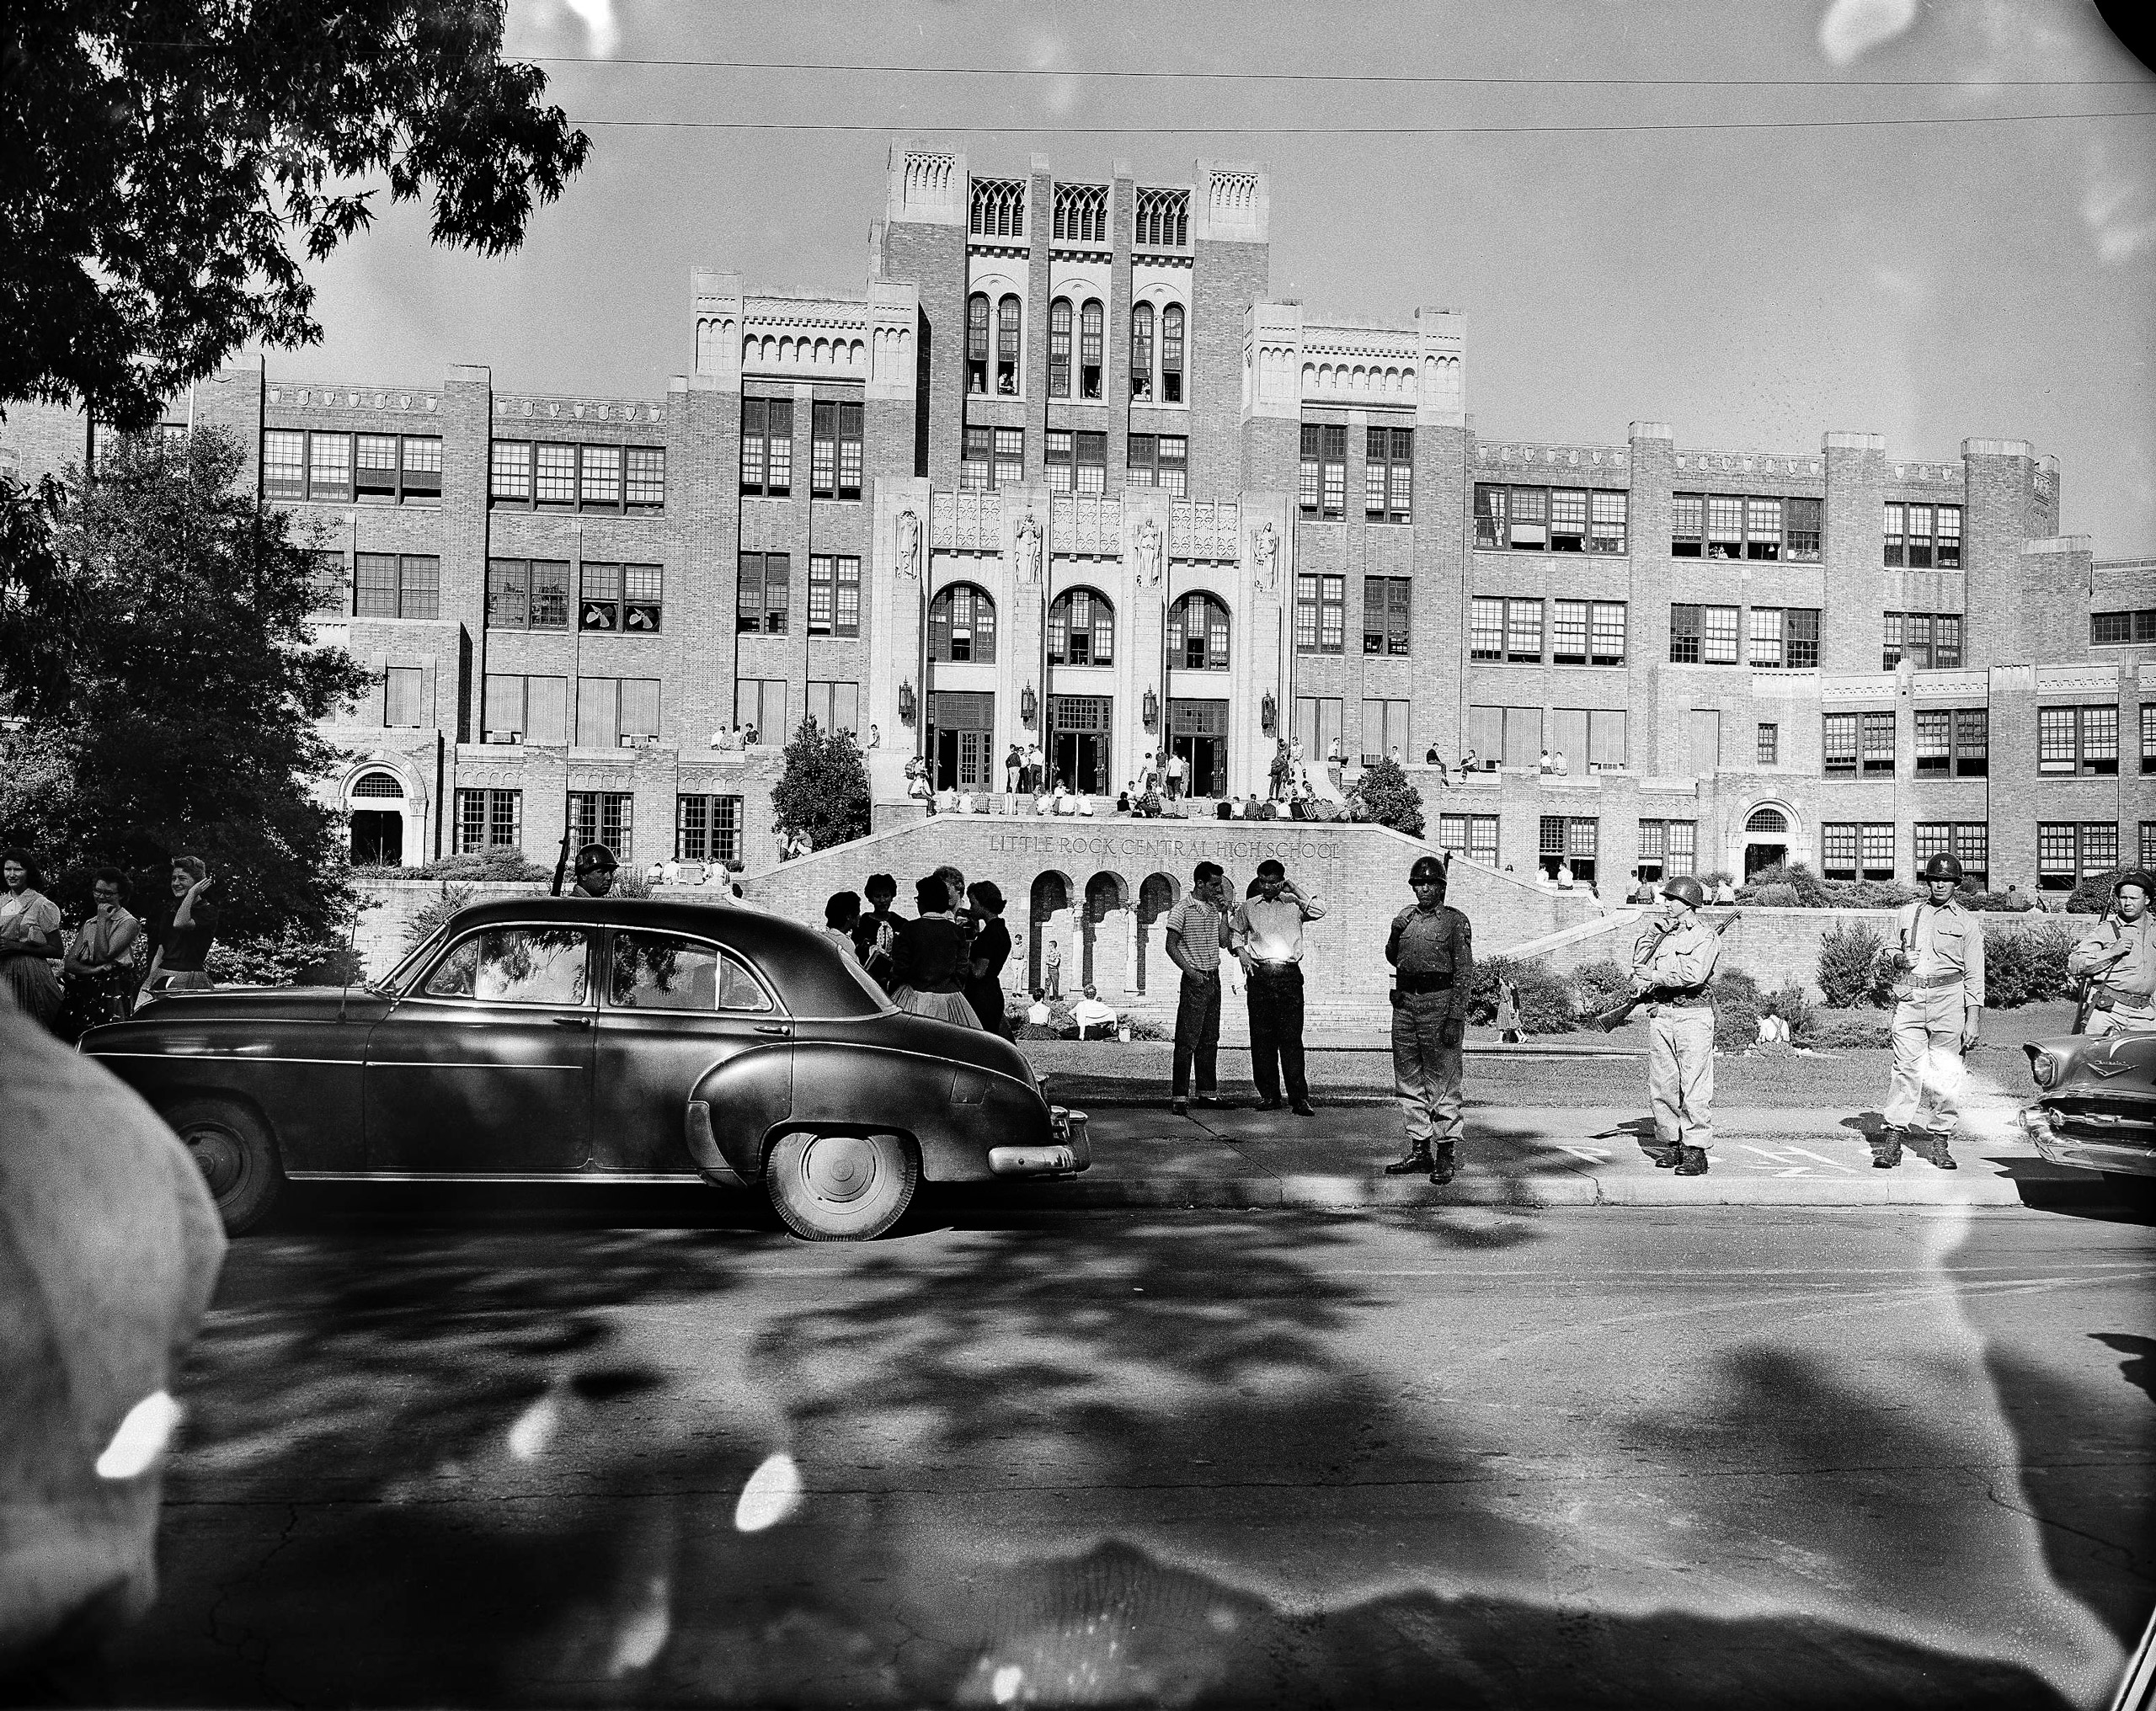 A small crowd of people gathering in front of Little Rock Central High School on Sept. 16, 1957.